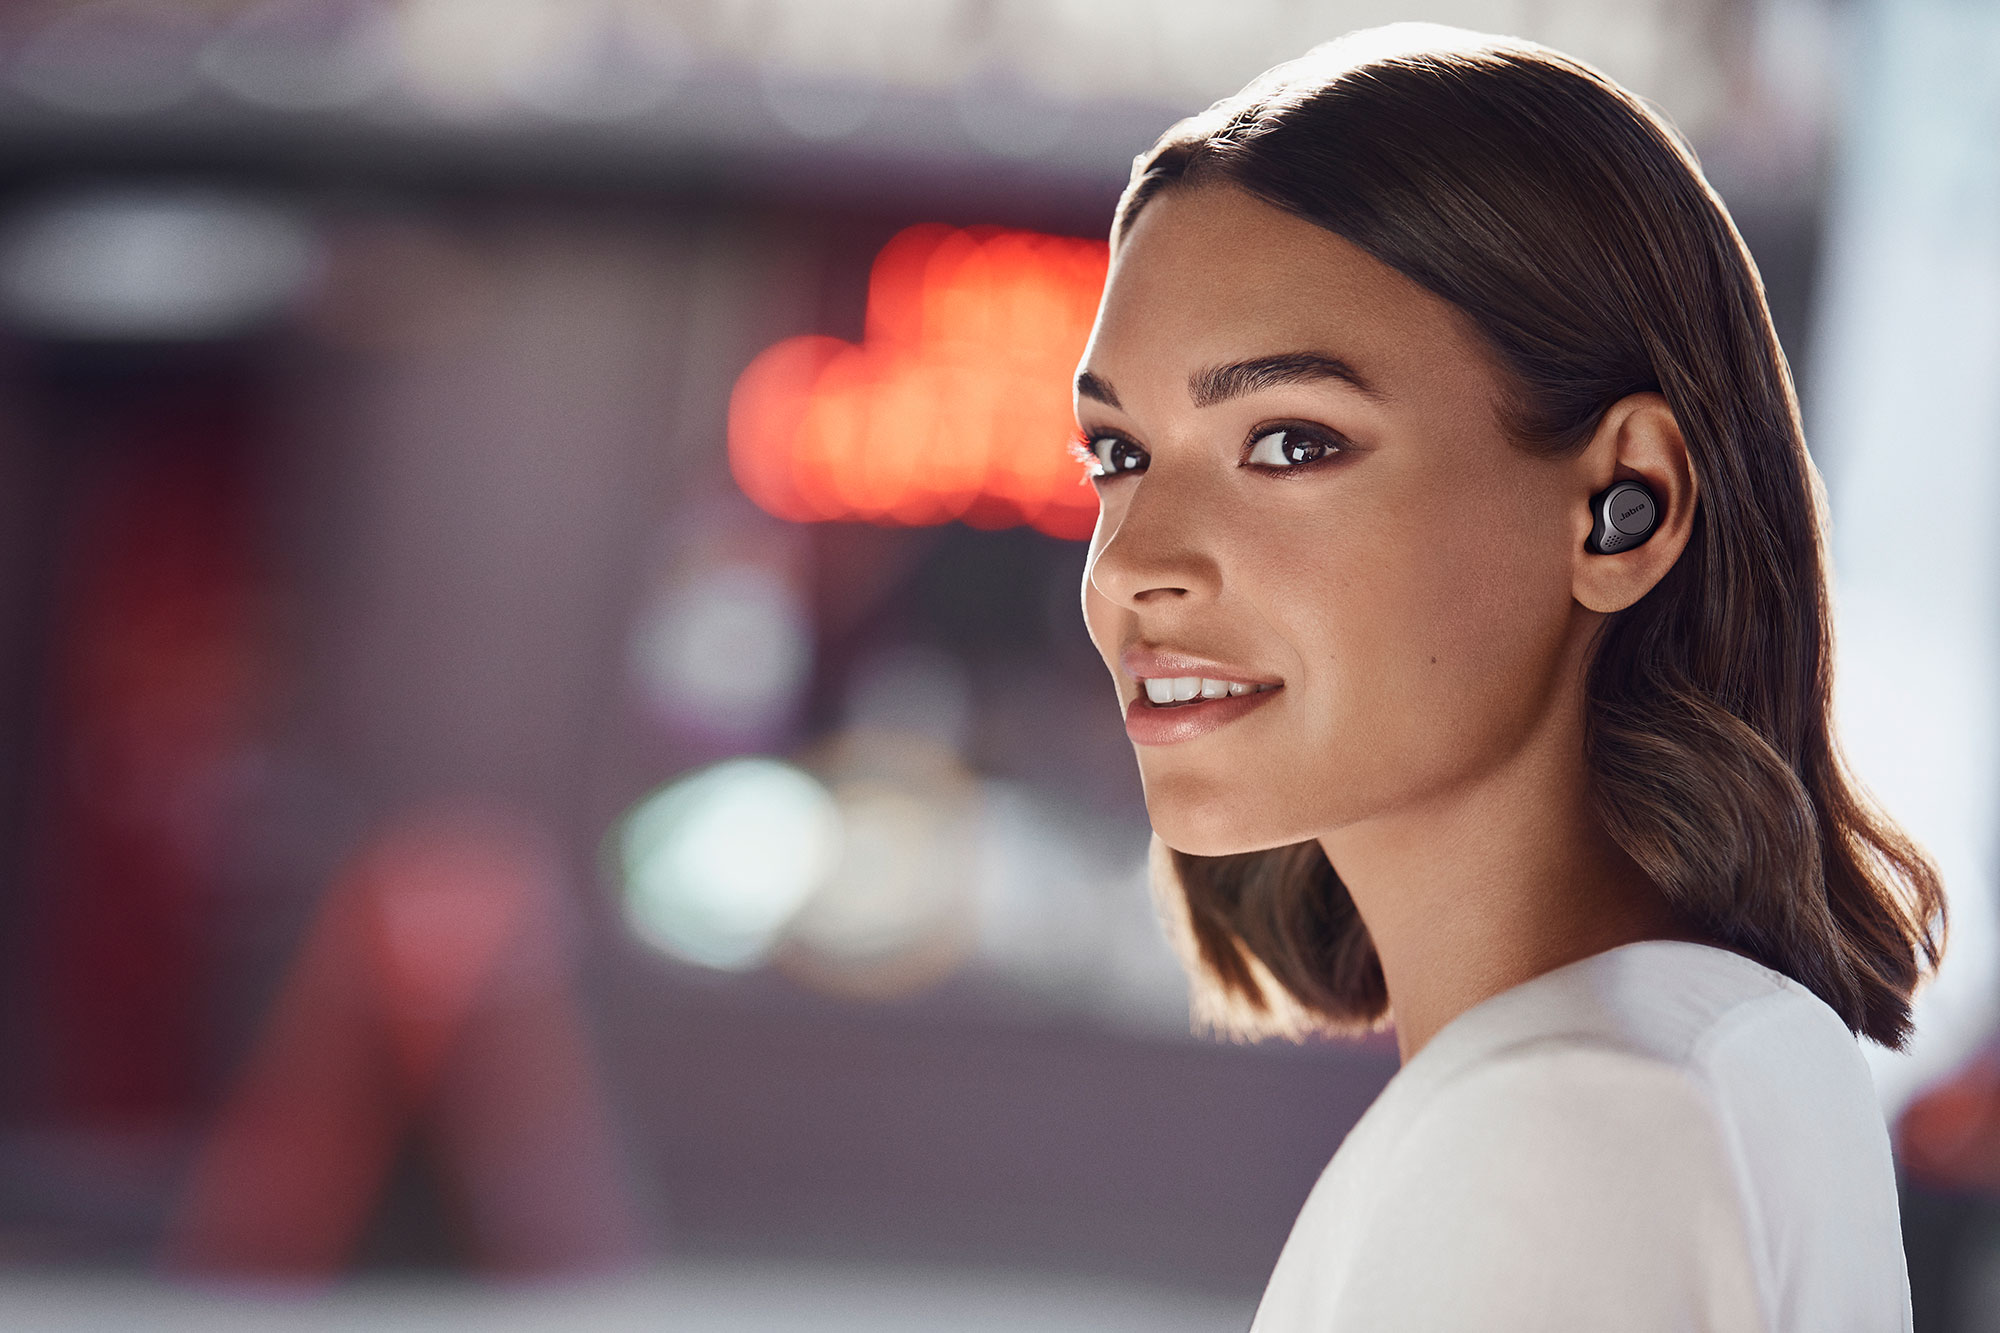 Jabra S Elite 75t True Wireless Earbuds Have A Smaller Design Bigger Battery And Usb C Thecanadiantechie